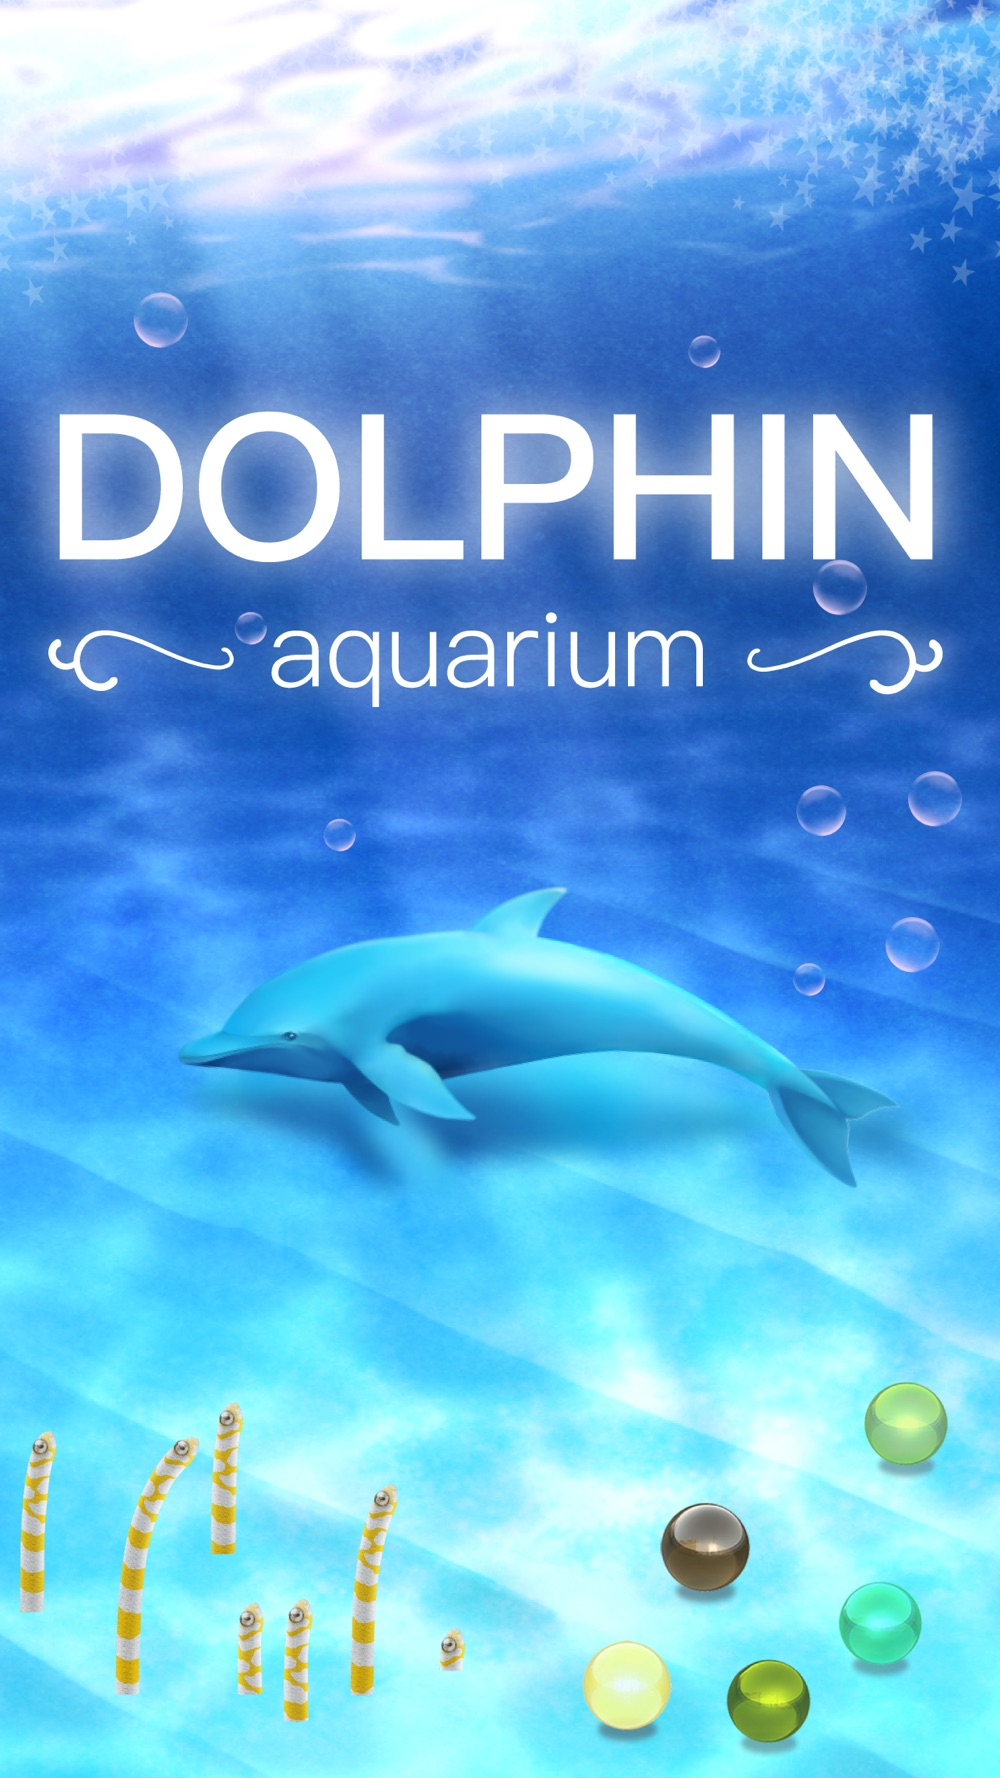 Aquarium Dolphin Simulation Game Cheat Codes